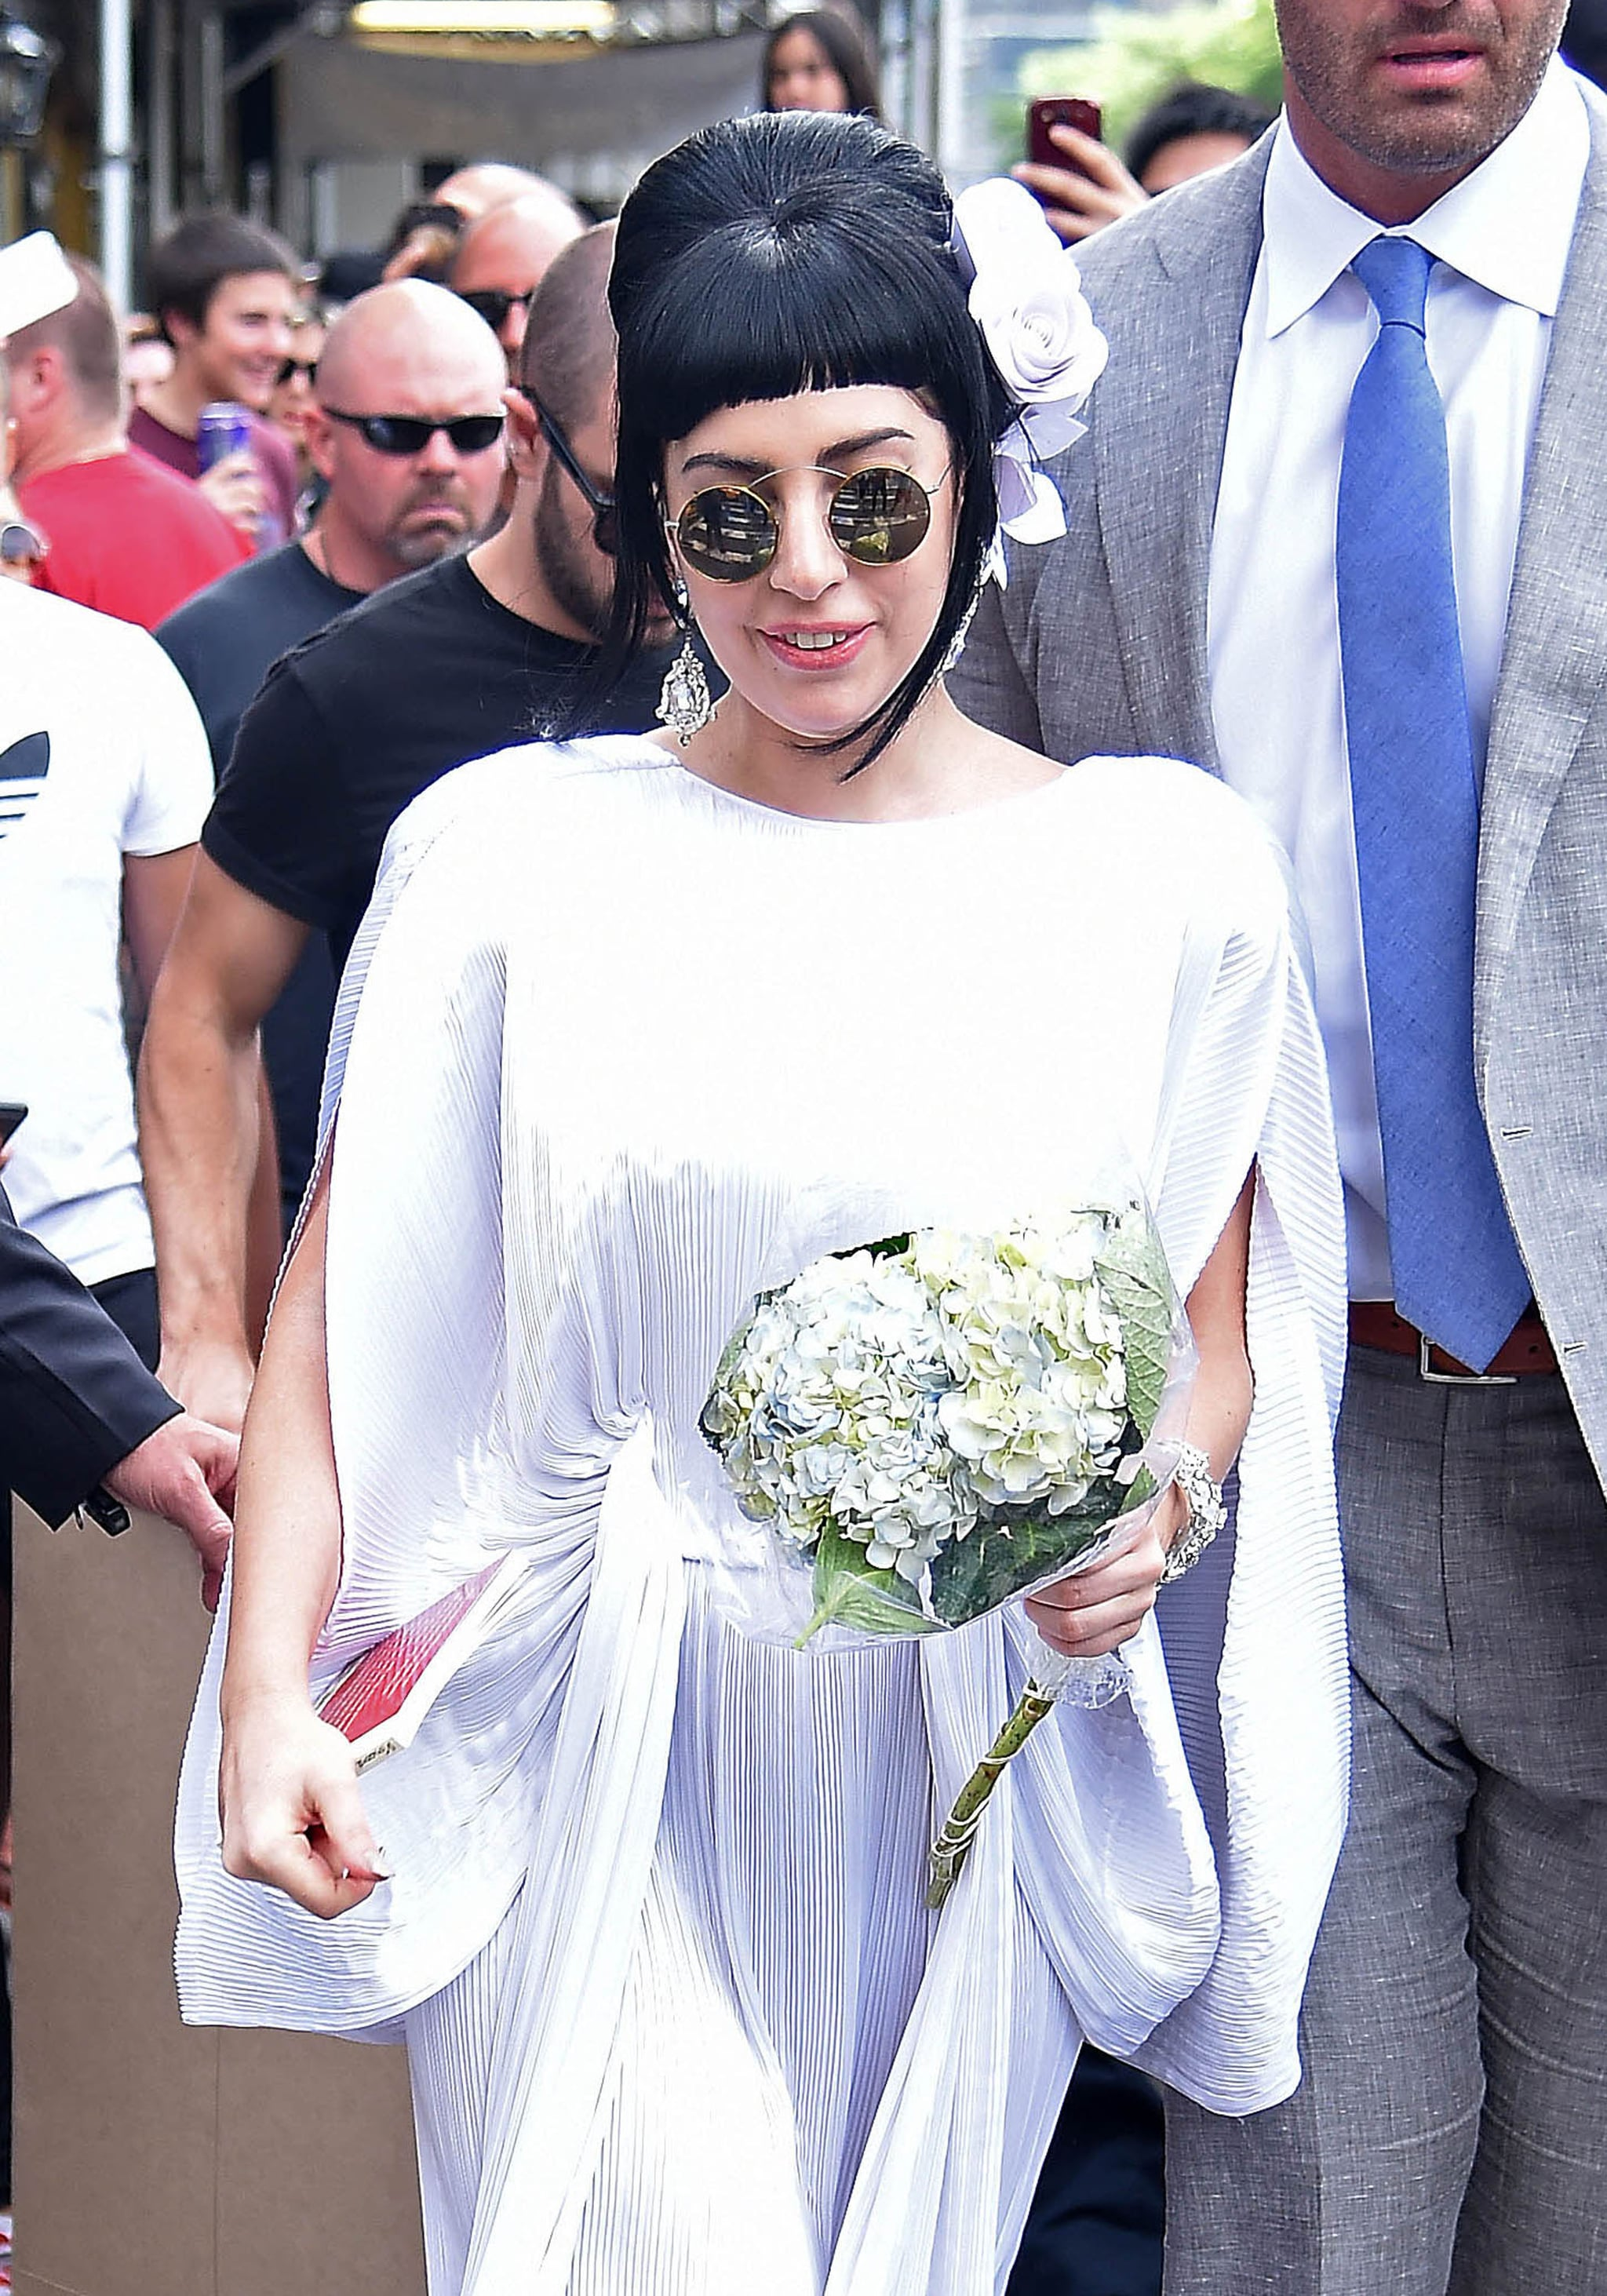 Lady Gaga stepped out in wedding white in NYC on Friday.